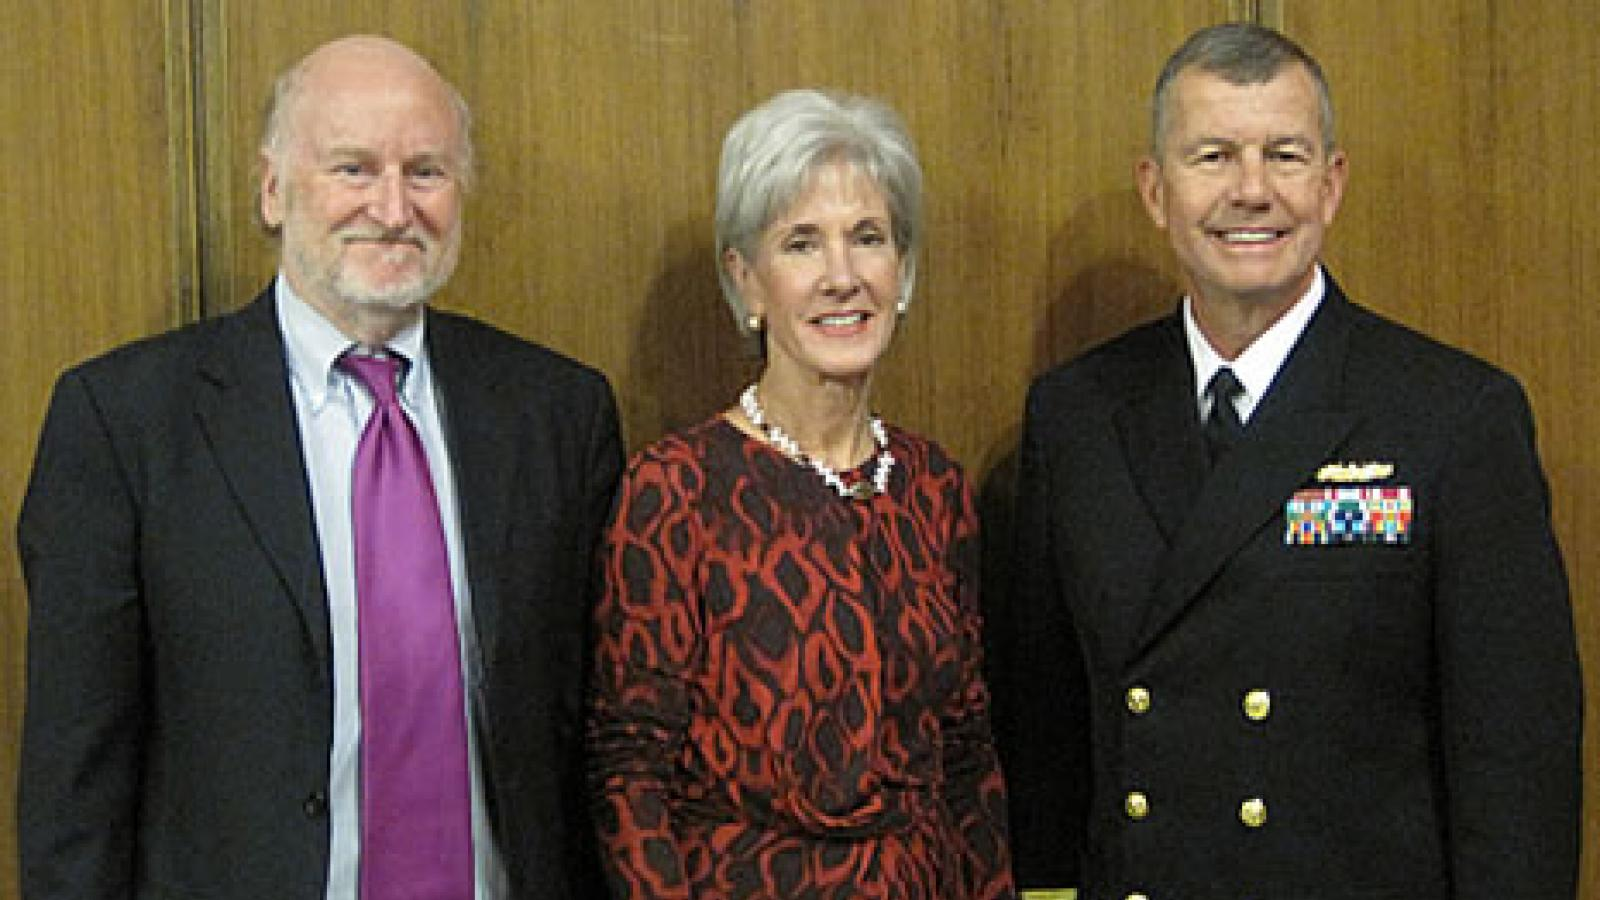 NEA Chairman Rocco Landesman, Health and Human Services Secretary Kathleen Sebelius, and Rear Admiral Alton L. Stocks, Commander, Walter Reed National Military Medical Center Bethesda, were at The John F. Kennedy Center For The Performing Arts to announce